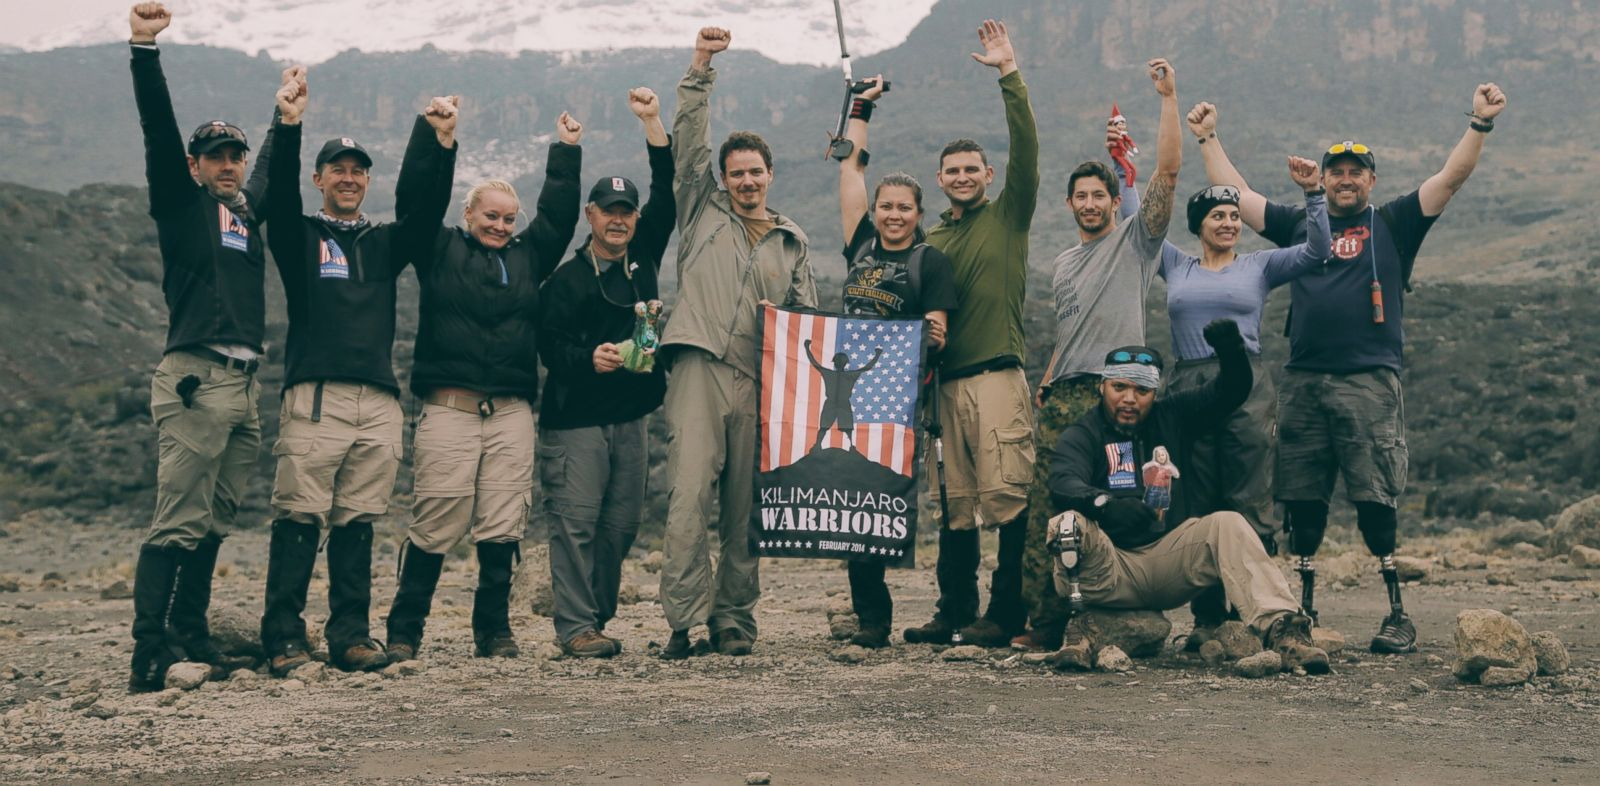 PHOTO: The Mount Kilimanjaro Warriors at Halfway Point to Summit